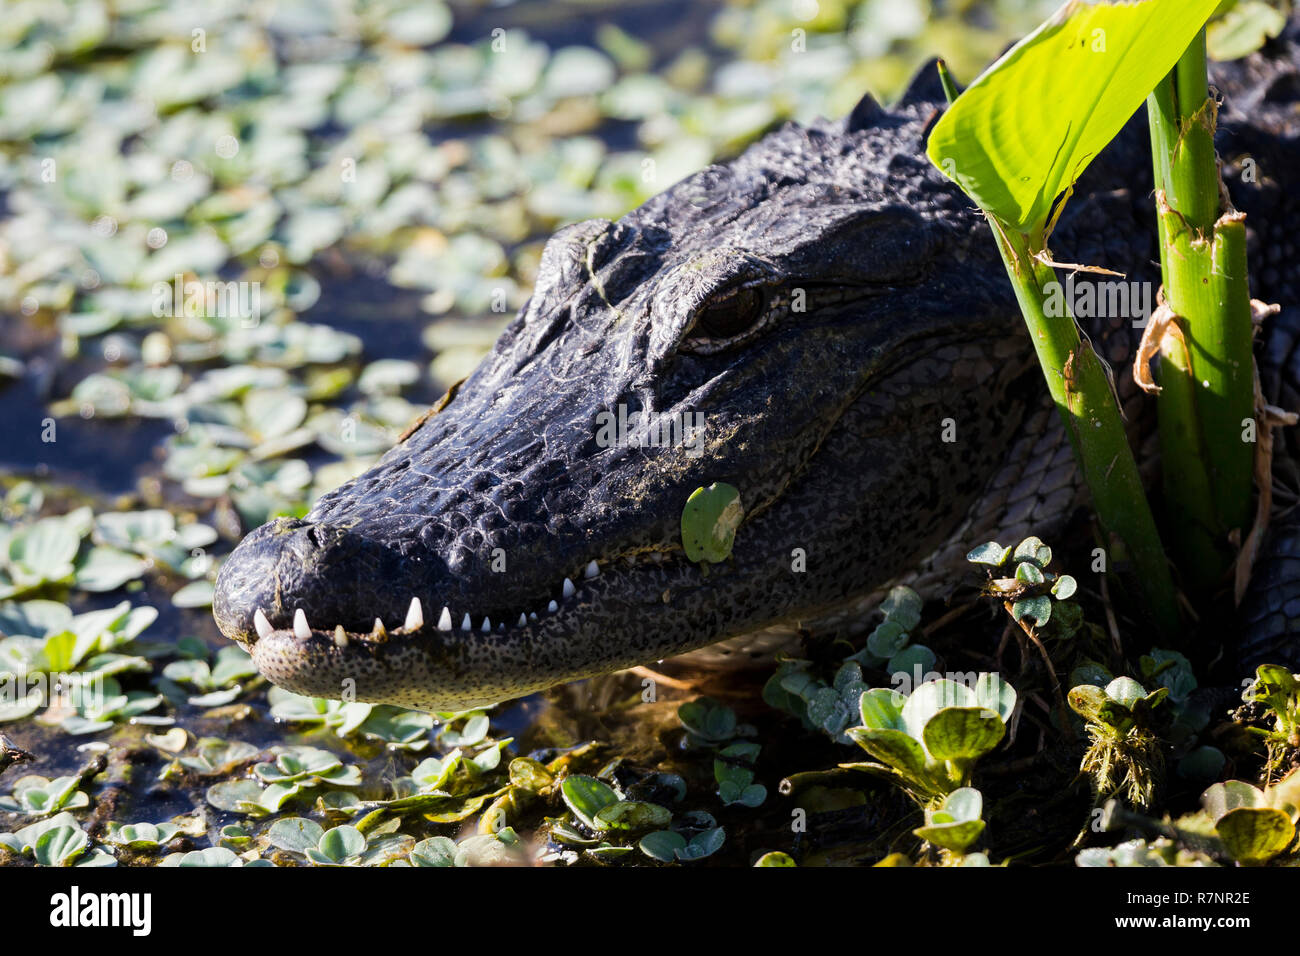 A close view of the head of a young adult Alligator amongst weed, Florida Everglades, southern USA, United States of America - Stock Image